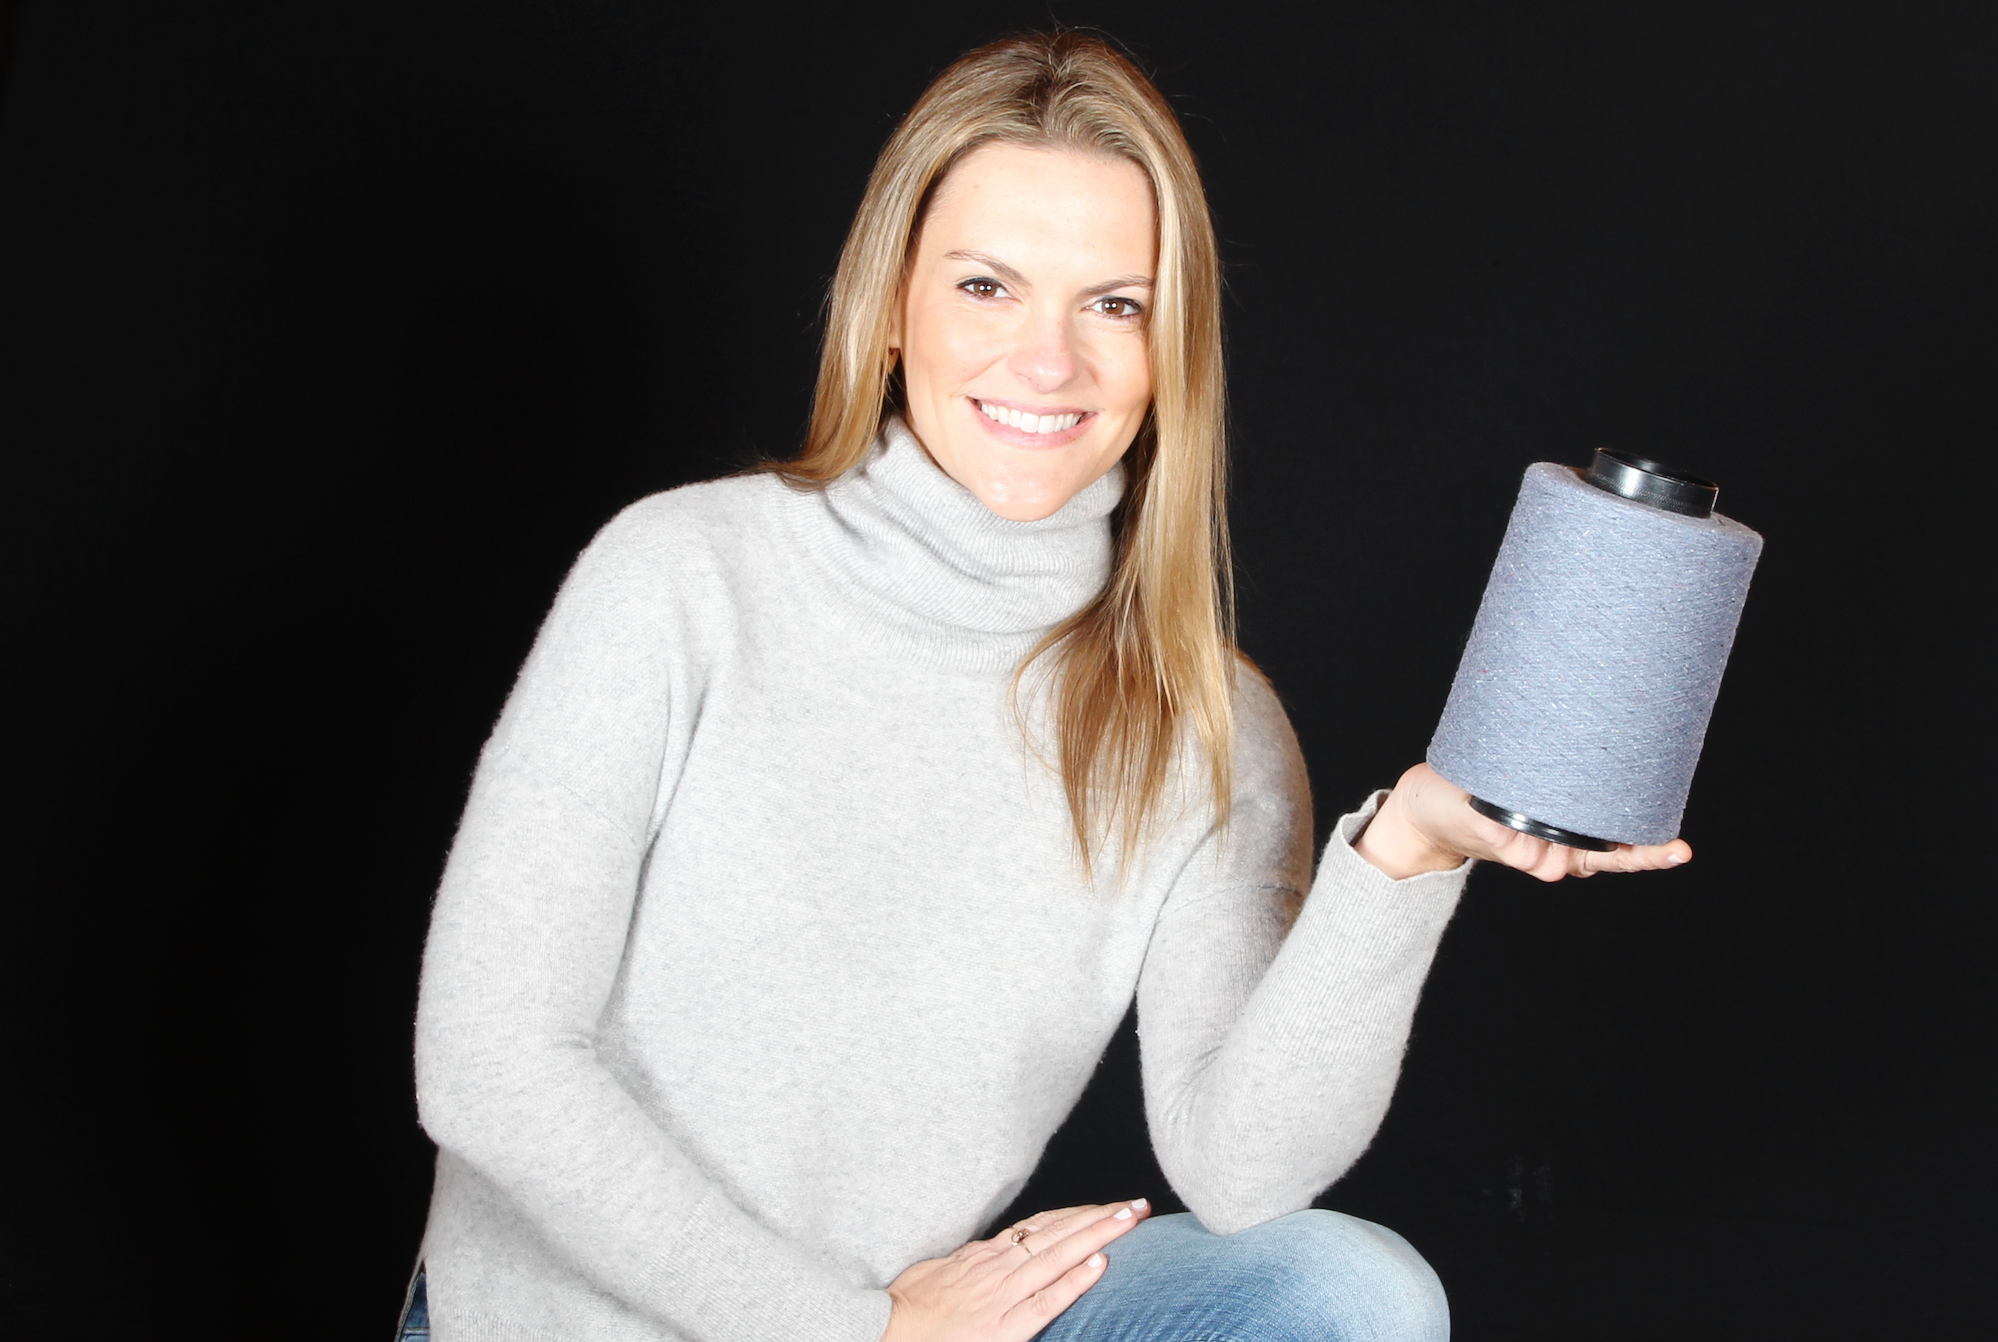 Turning waste into treasure - Patricia Ermecheo CEO & Founder of Osom Brand and OSOMTEX is disrupting the Fashion Industry with her patent pending upcycled yarns made from discarded clothing.Read Patricia's FORBES feature here